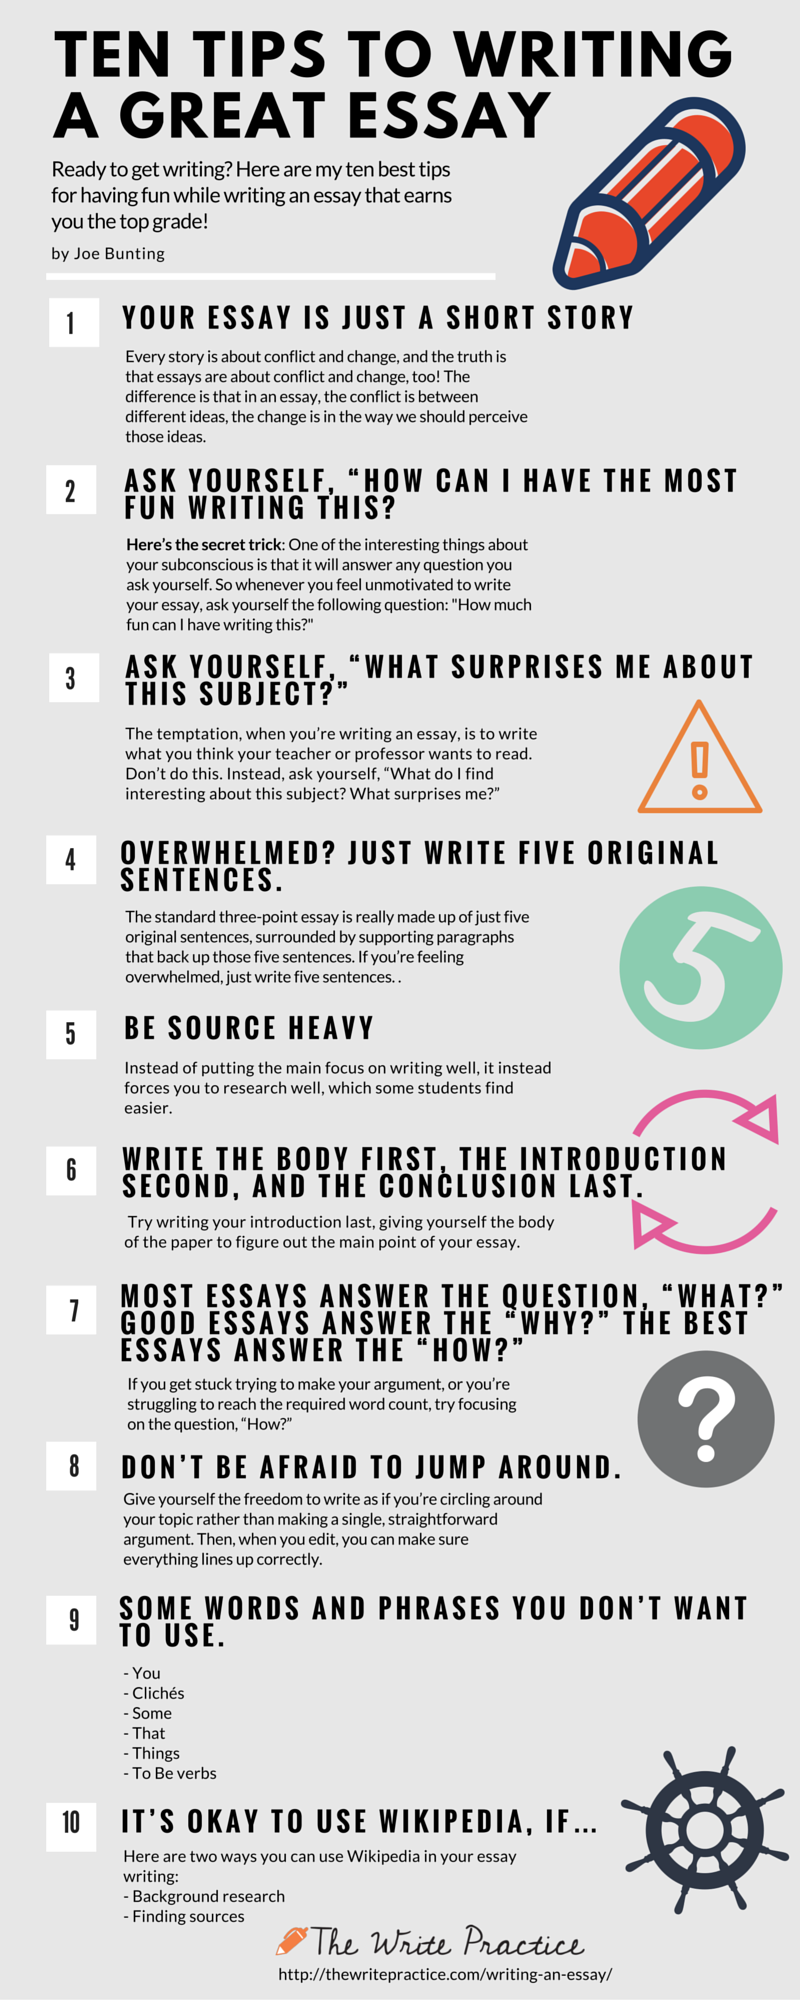 10 tips to write an essay and actually enjoy it writing an essay that in mind here s an infographic ten tips to write an essay out